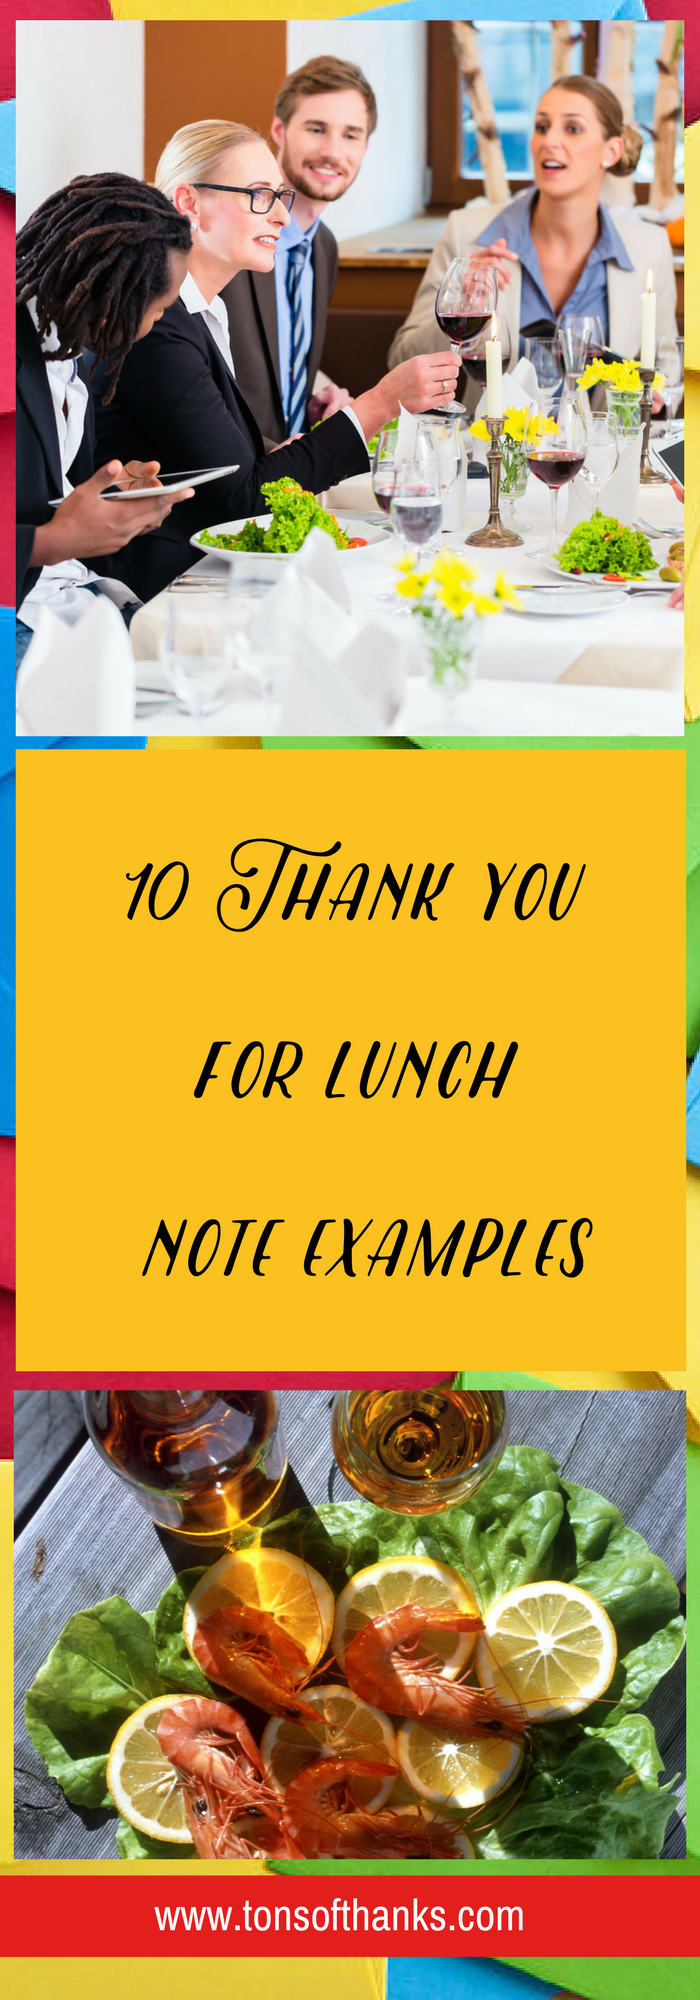 Thank You For Delicious Lunch Quotes : thank, delicious, lunch, quotes, Thank, Lunch, Thank-You, Examples, Notes,, Gifts,, Boyfriend, Gifts